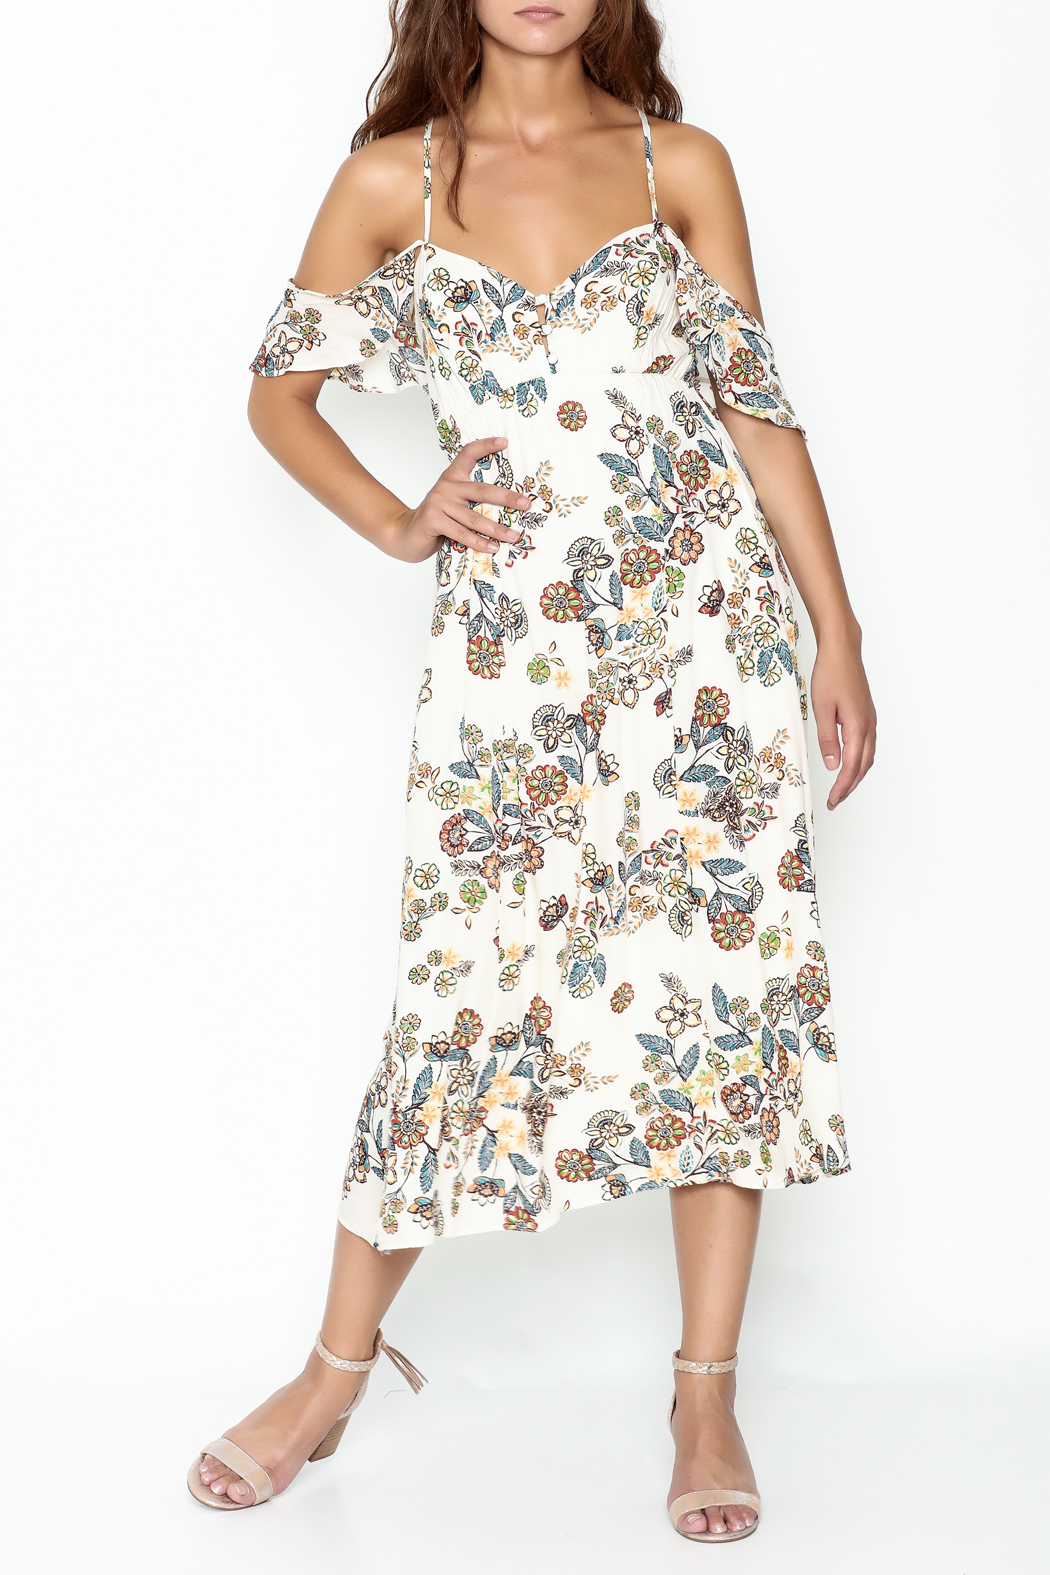 hummingbird Floral Dress - Main Image